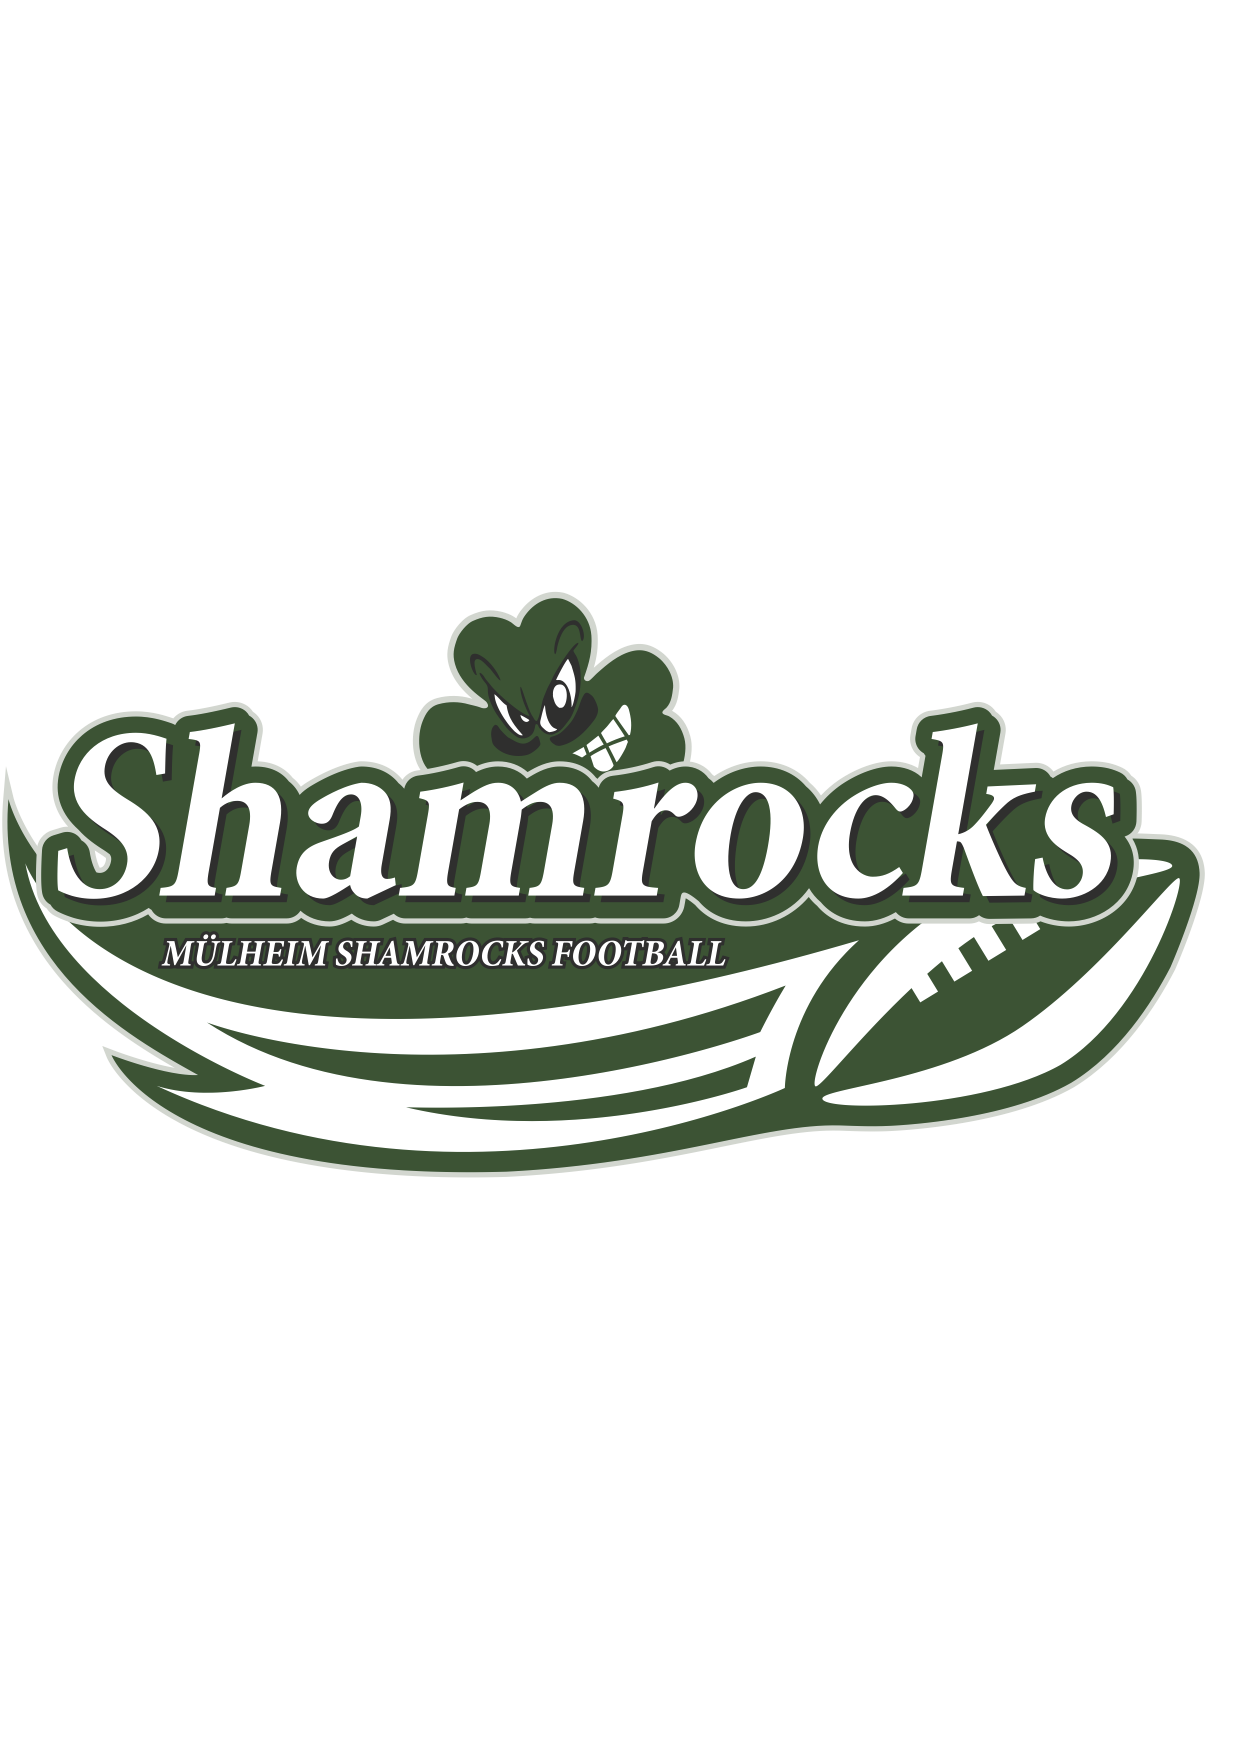 Mülheim Shamrocks